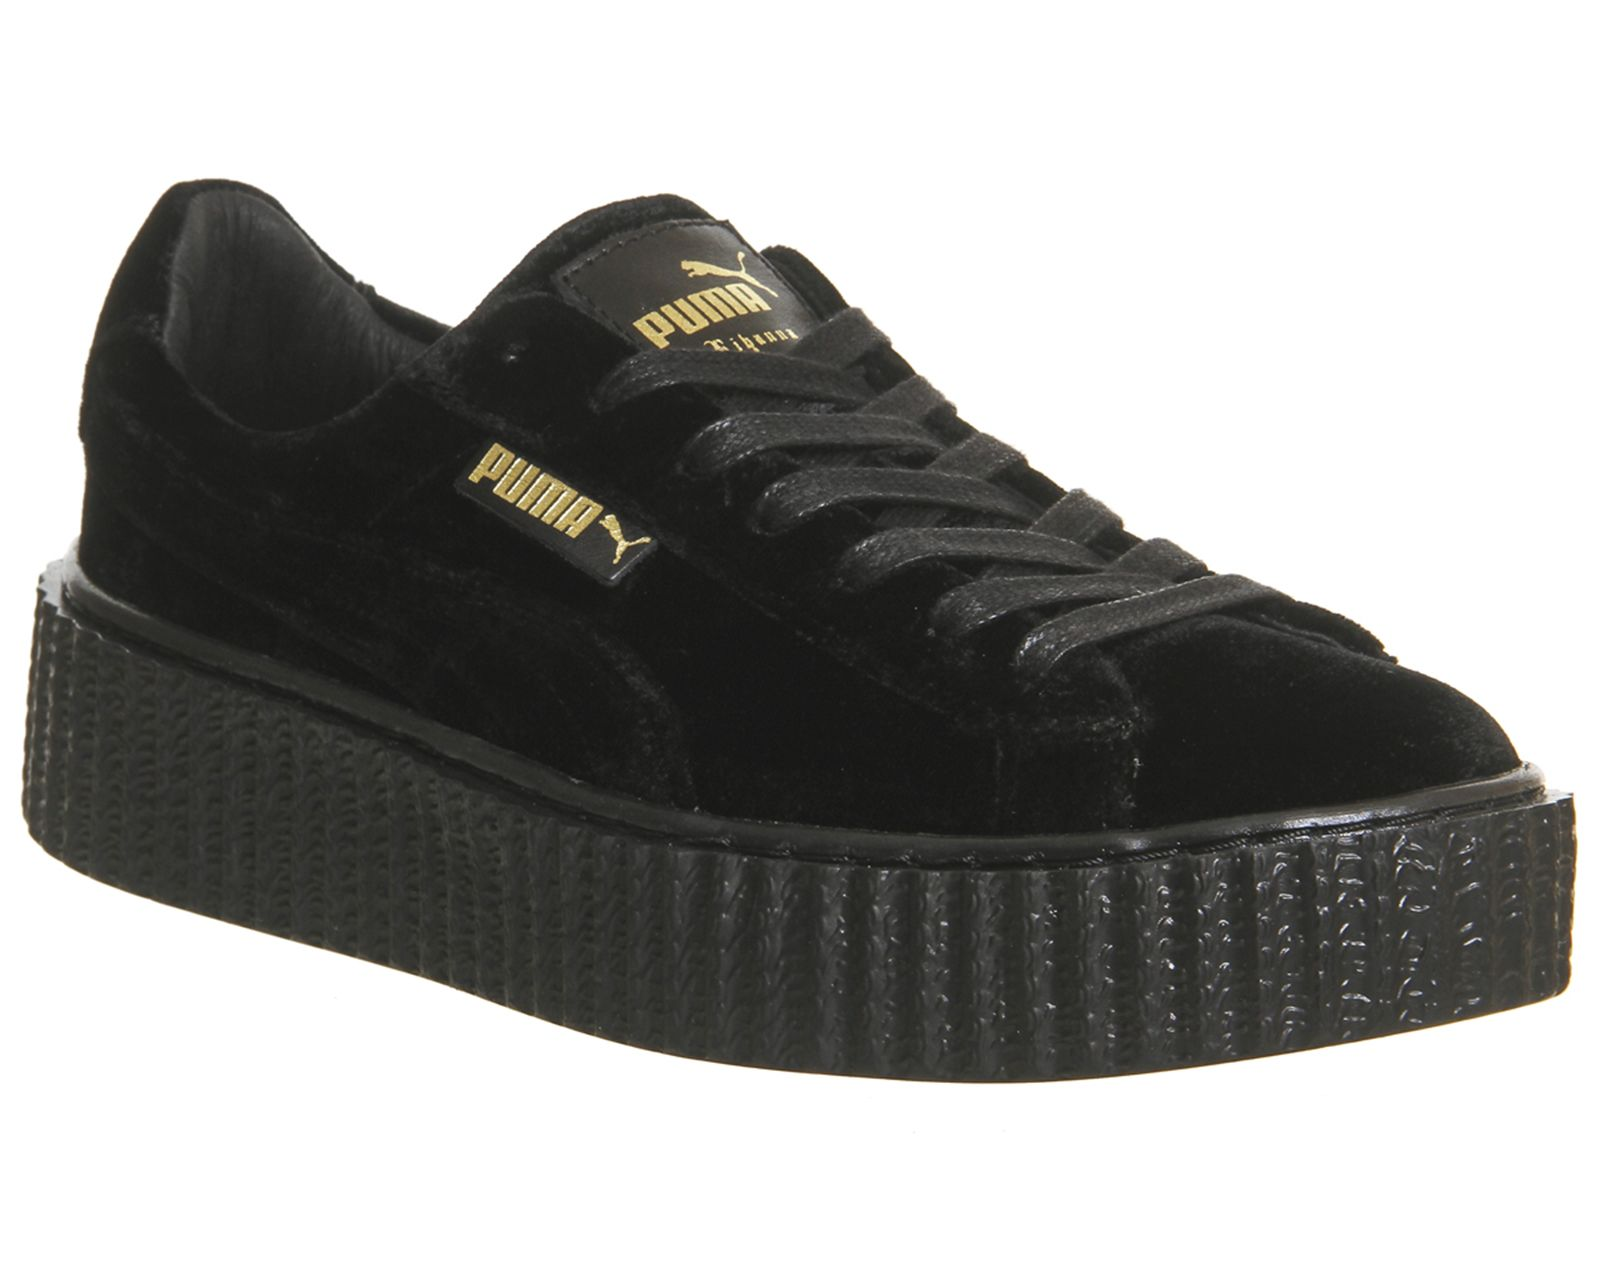 competitive price 45b38 d5e29 Puma Velvet Creepers Black Velvet Fenty | OFFICE | Newness ...